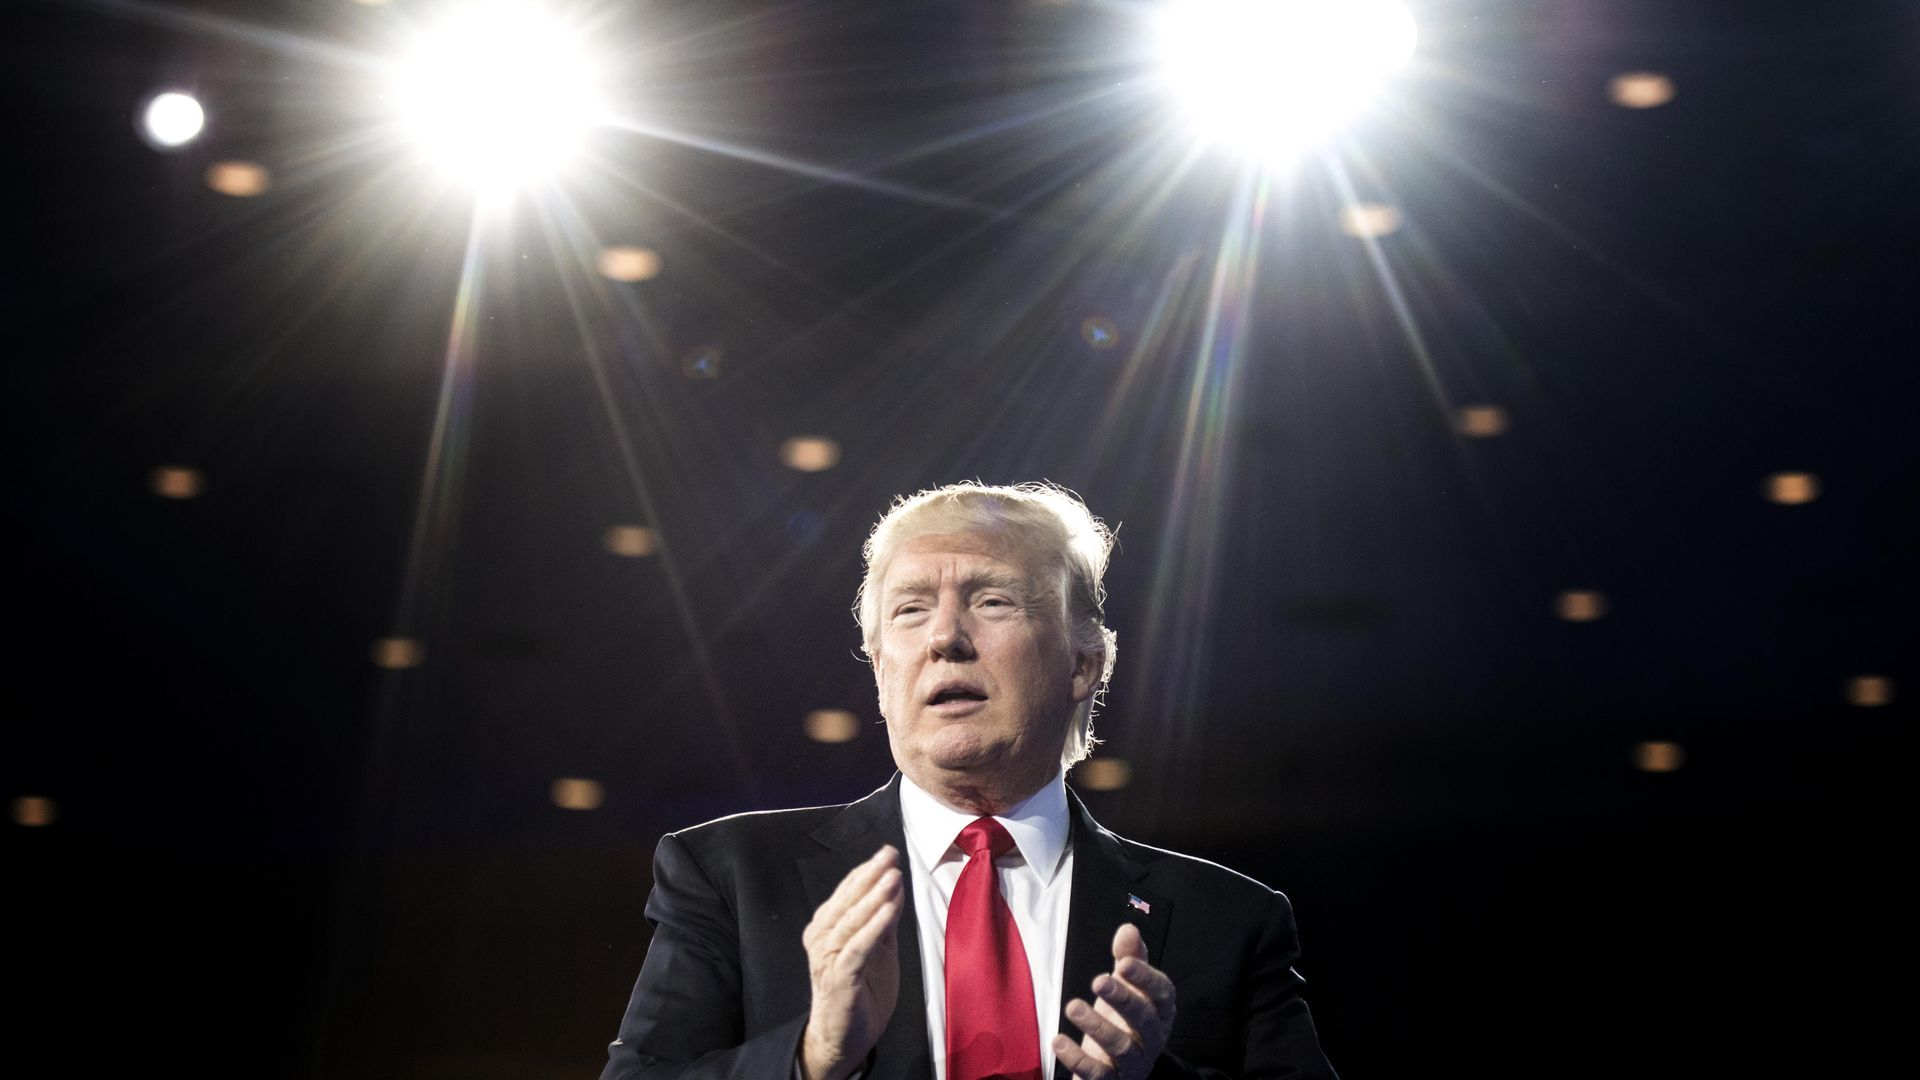 In this image, President Trump stands on stage behind two bright lights.